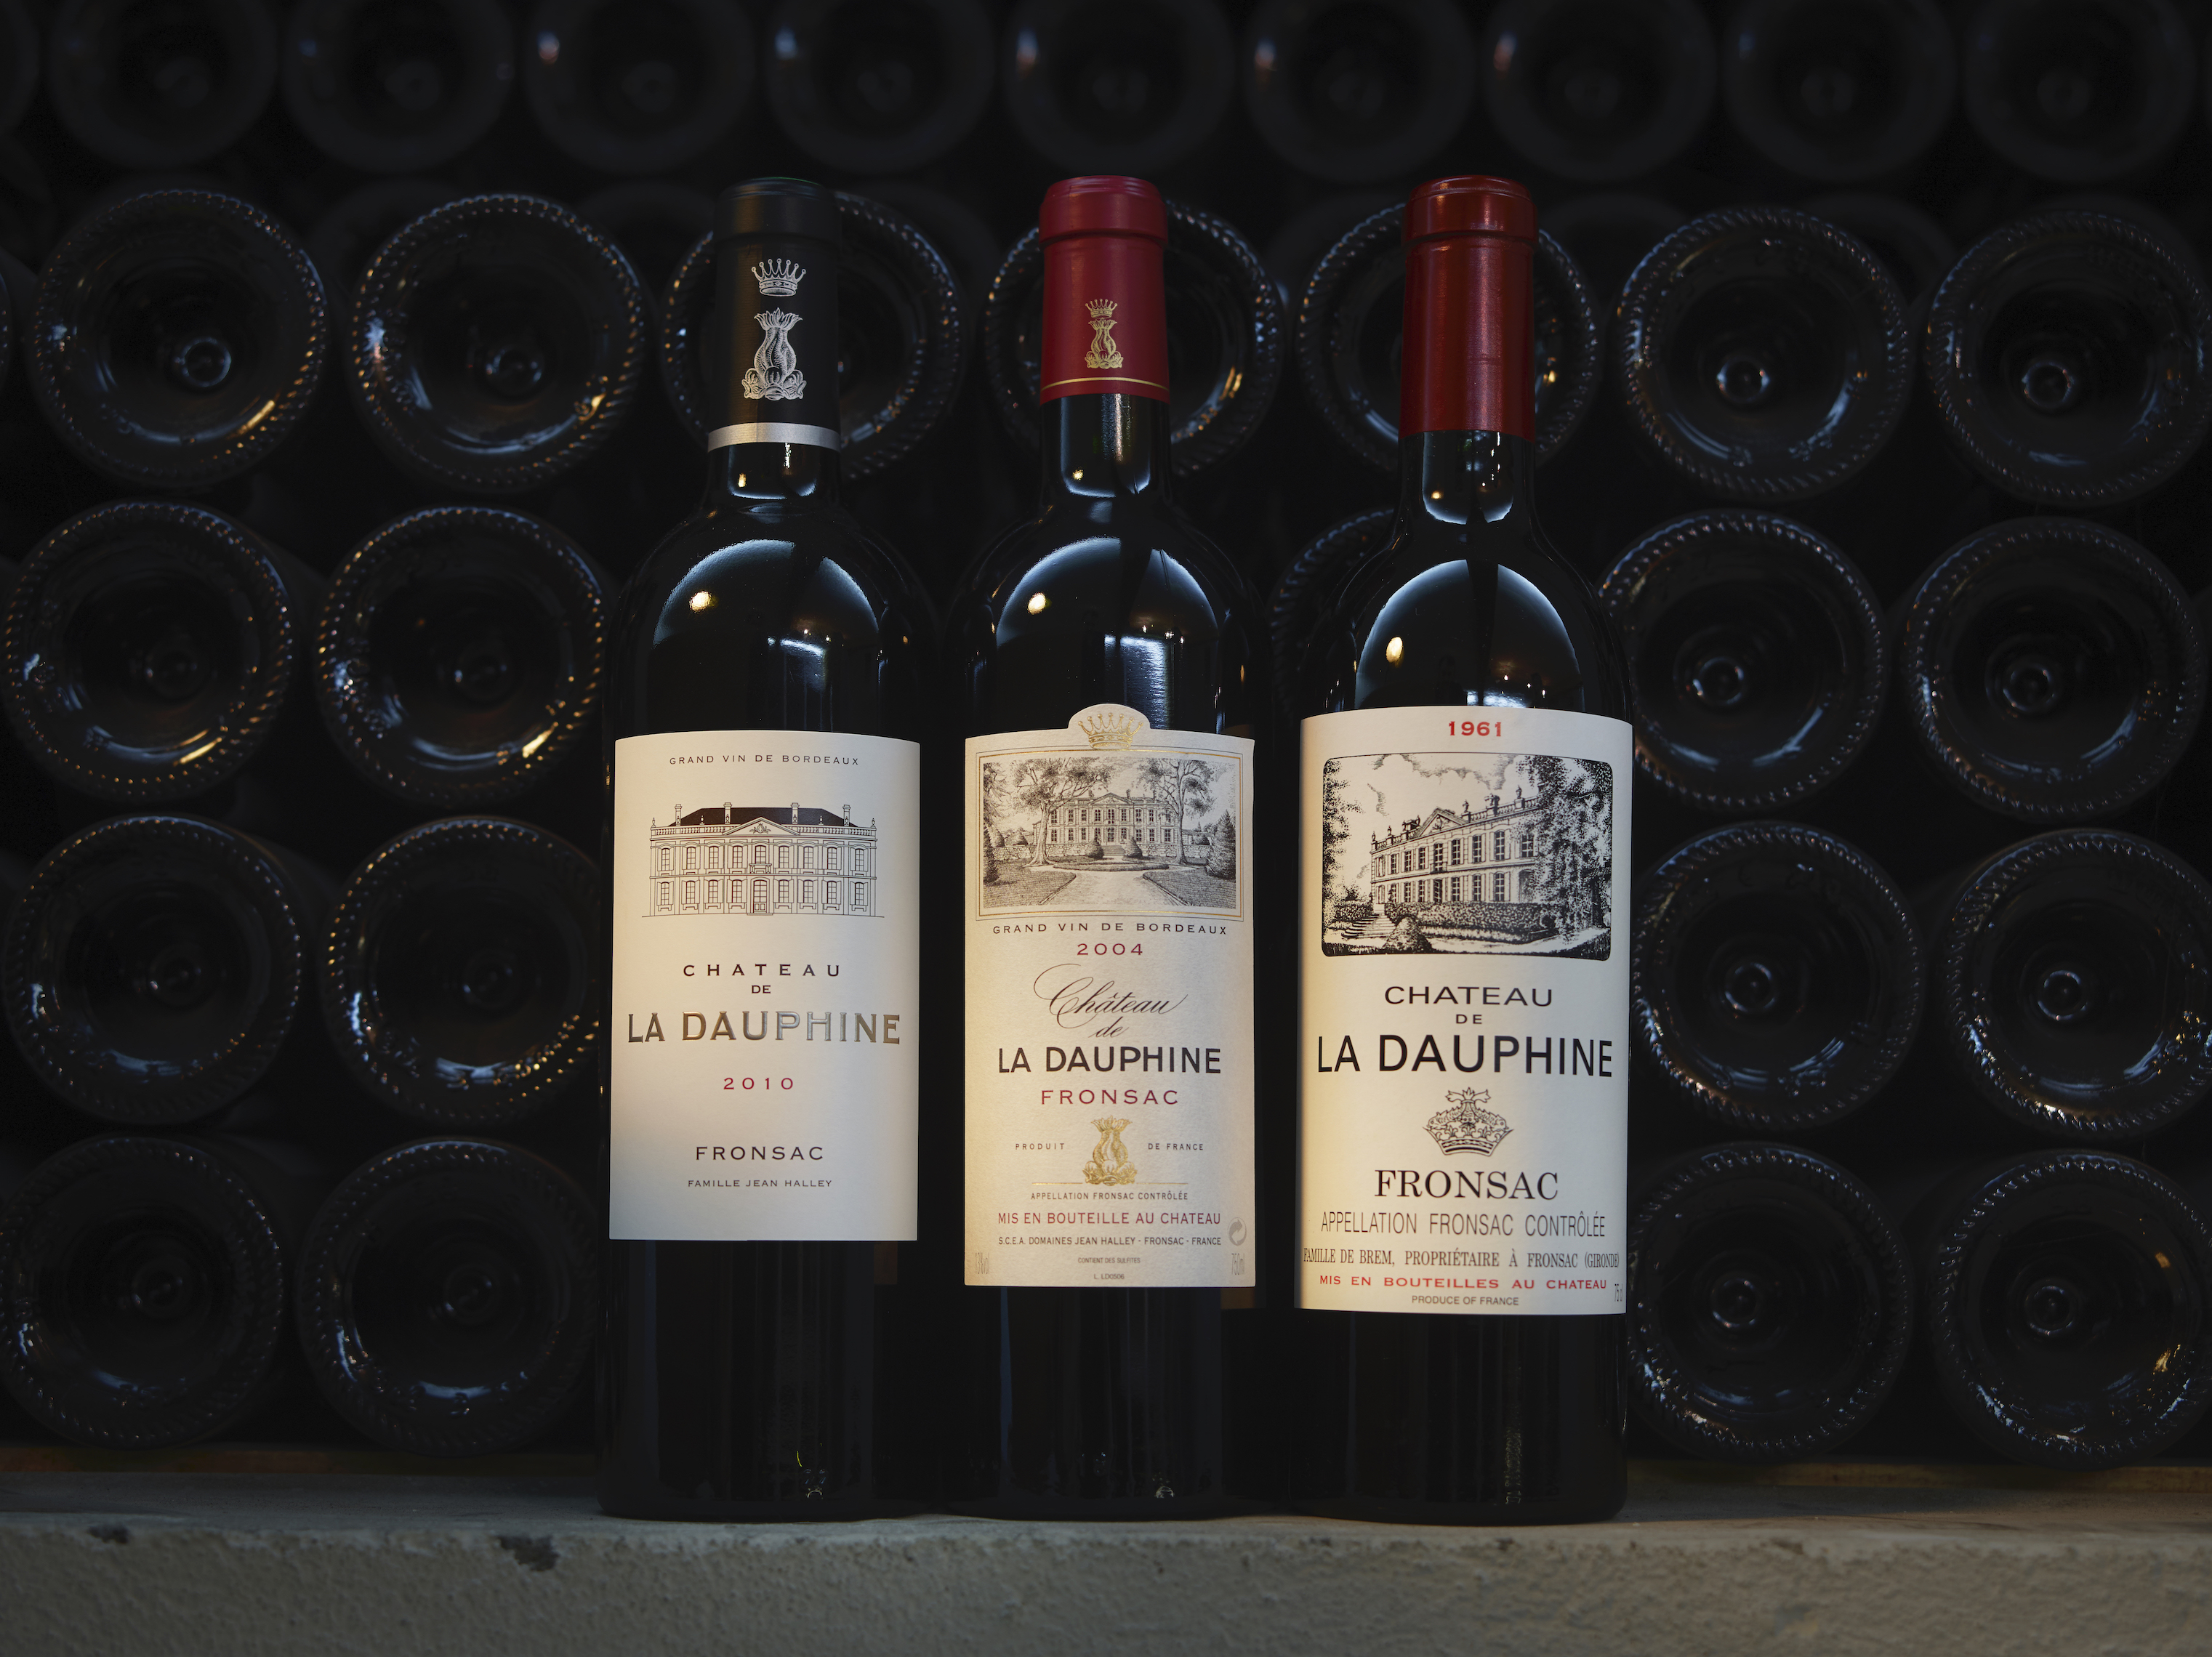 A range of bottles from the cellars @ladauphine